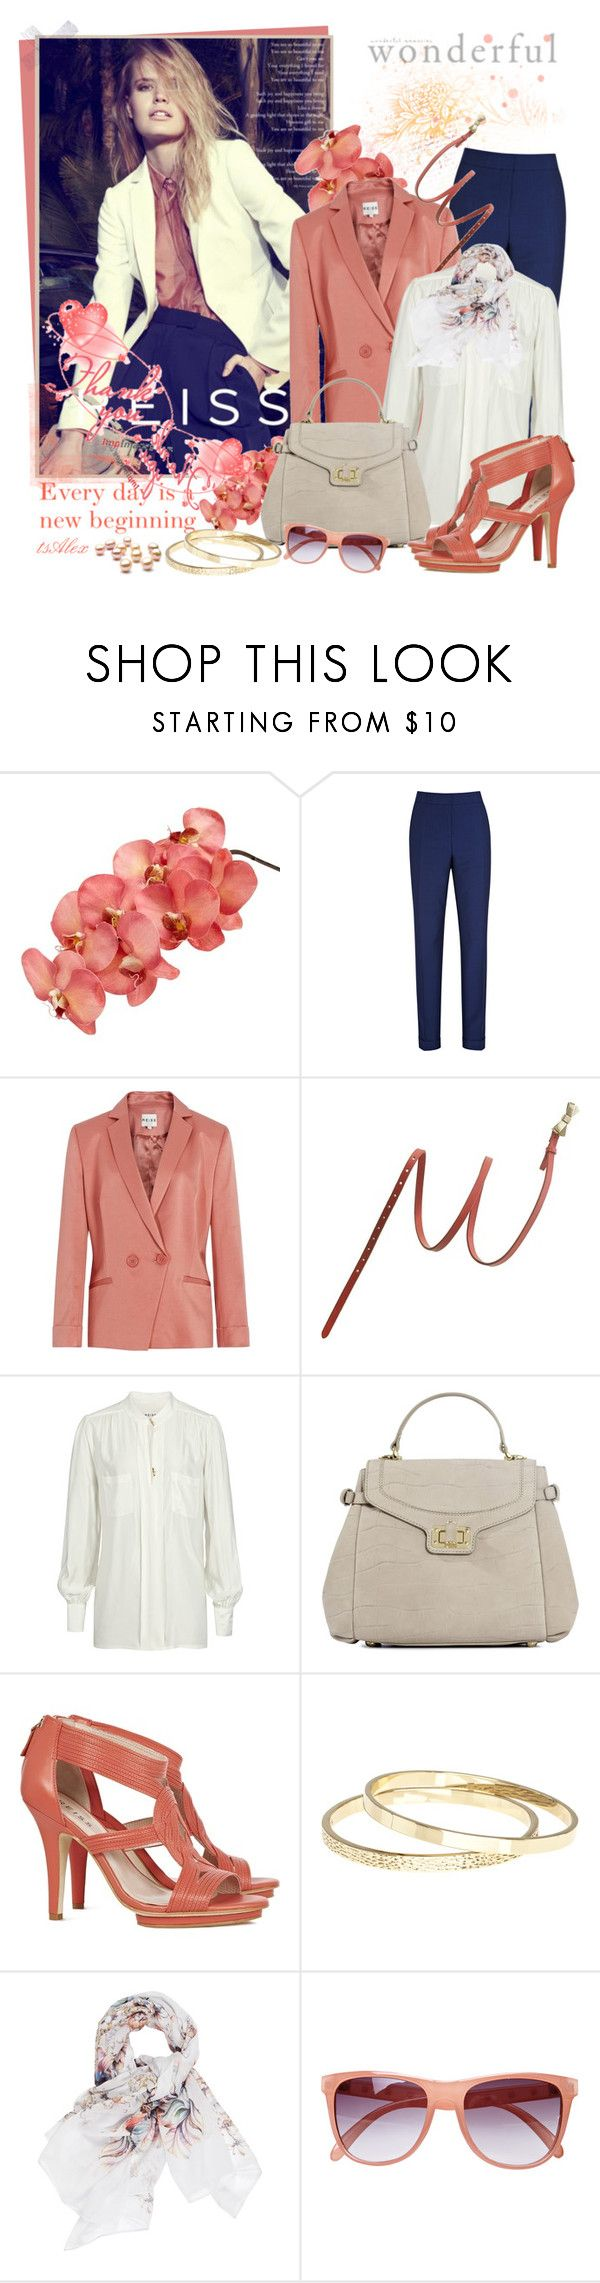 """""""Everyday is a new beginning"""" by ts-alex ❤ liked on Polyvore featuring Reiss, Madewell, Retrò, strappy sandals, floral scarves, blazers, slim fit pants, reiss, oversized shirt and beige handbag"""